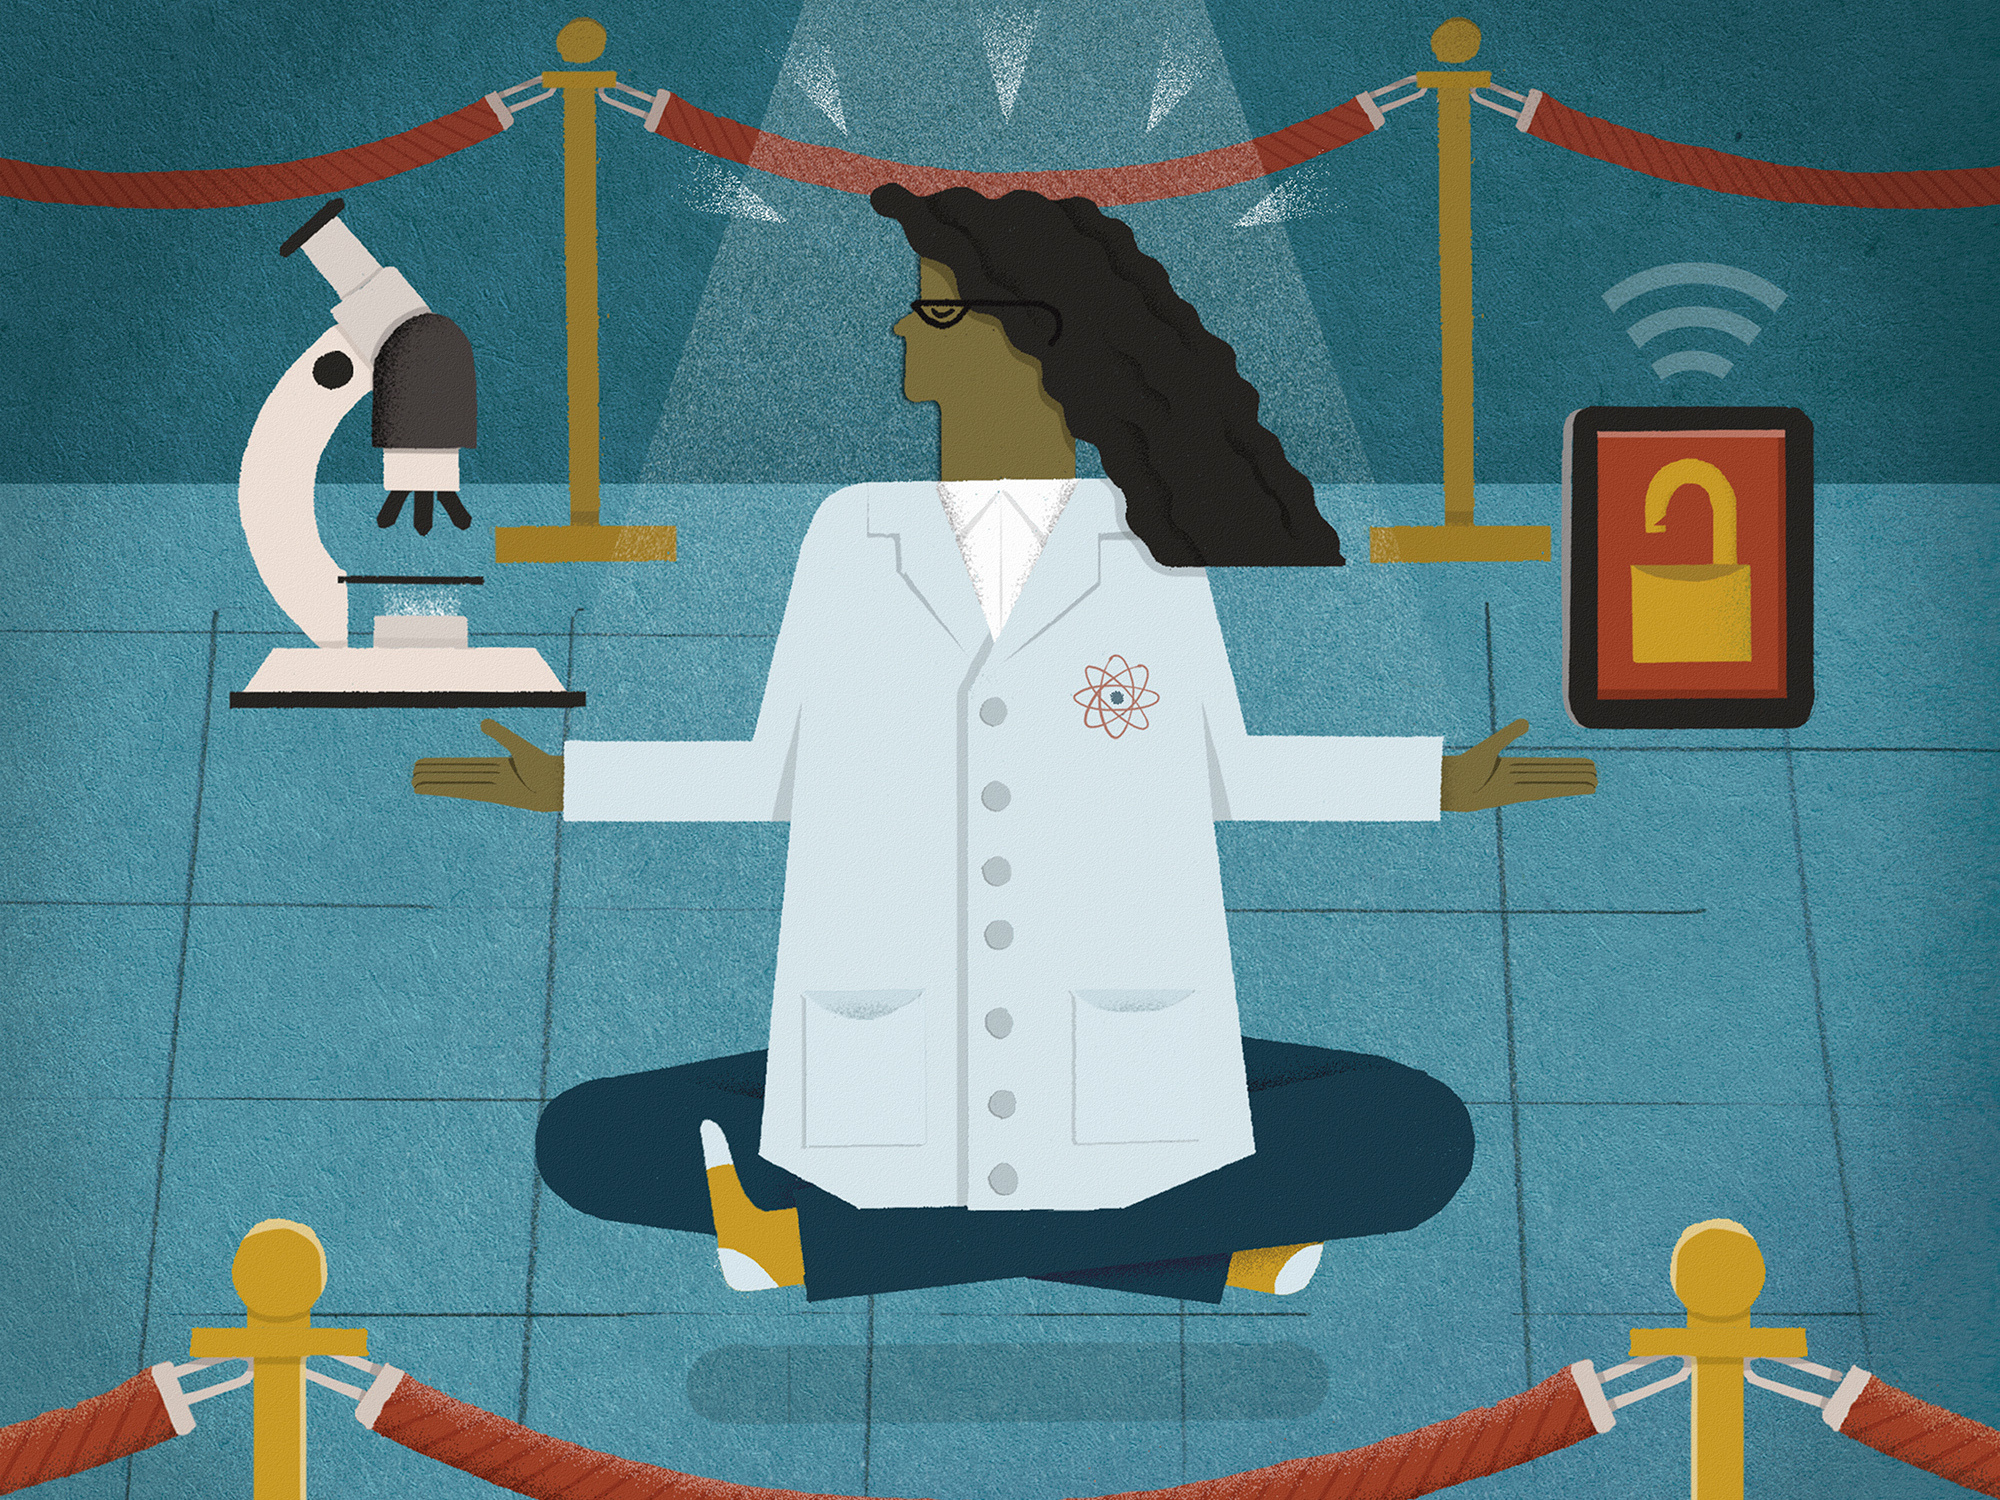 Journal Editors To Researchers: Show Everyone Your Clinical Data